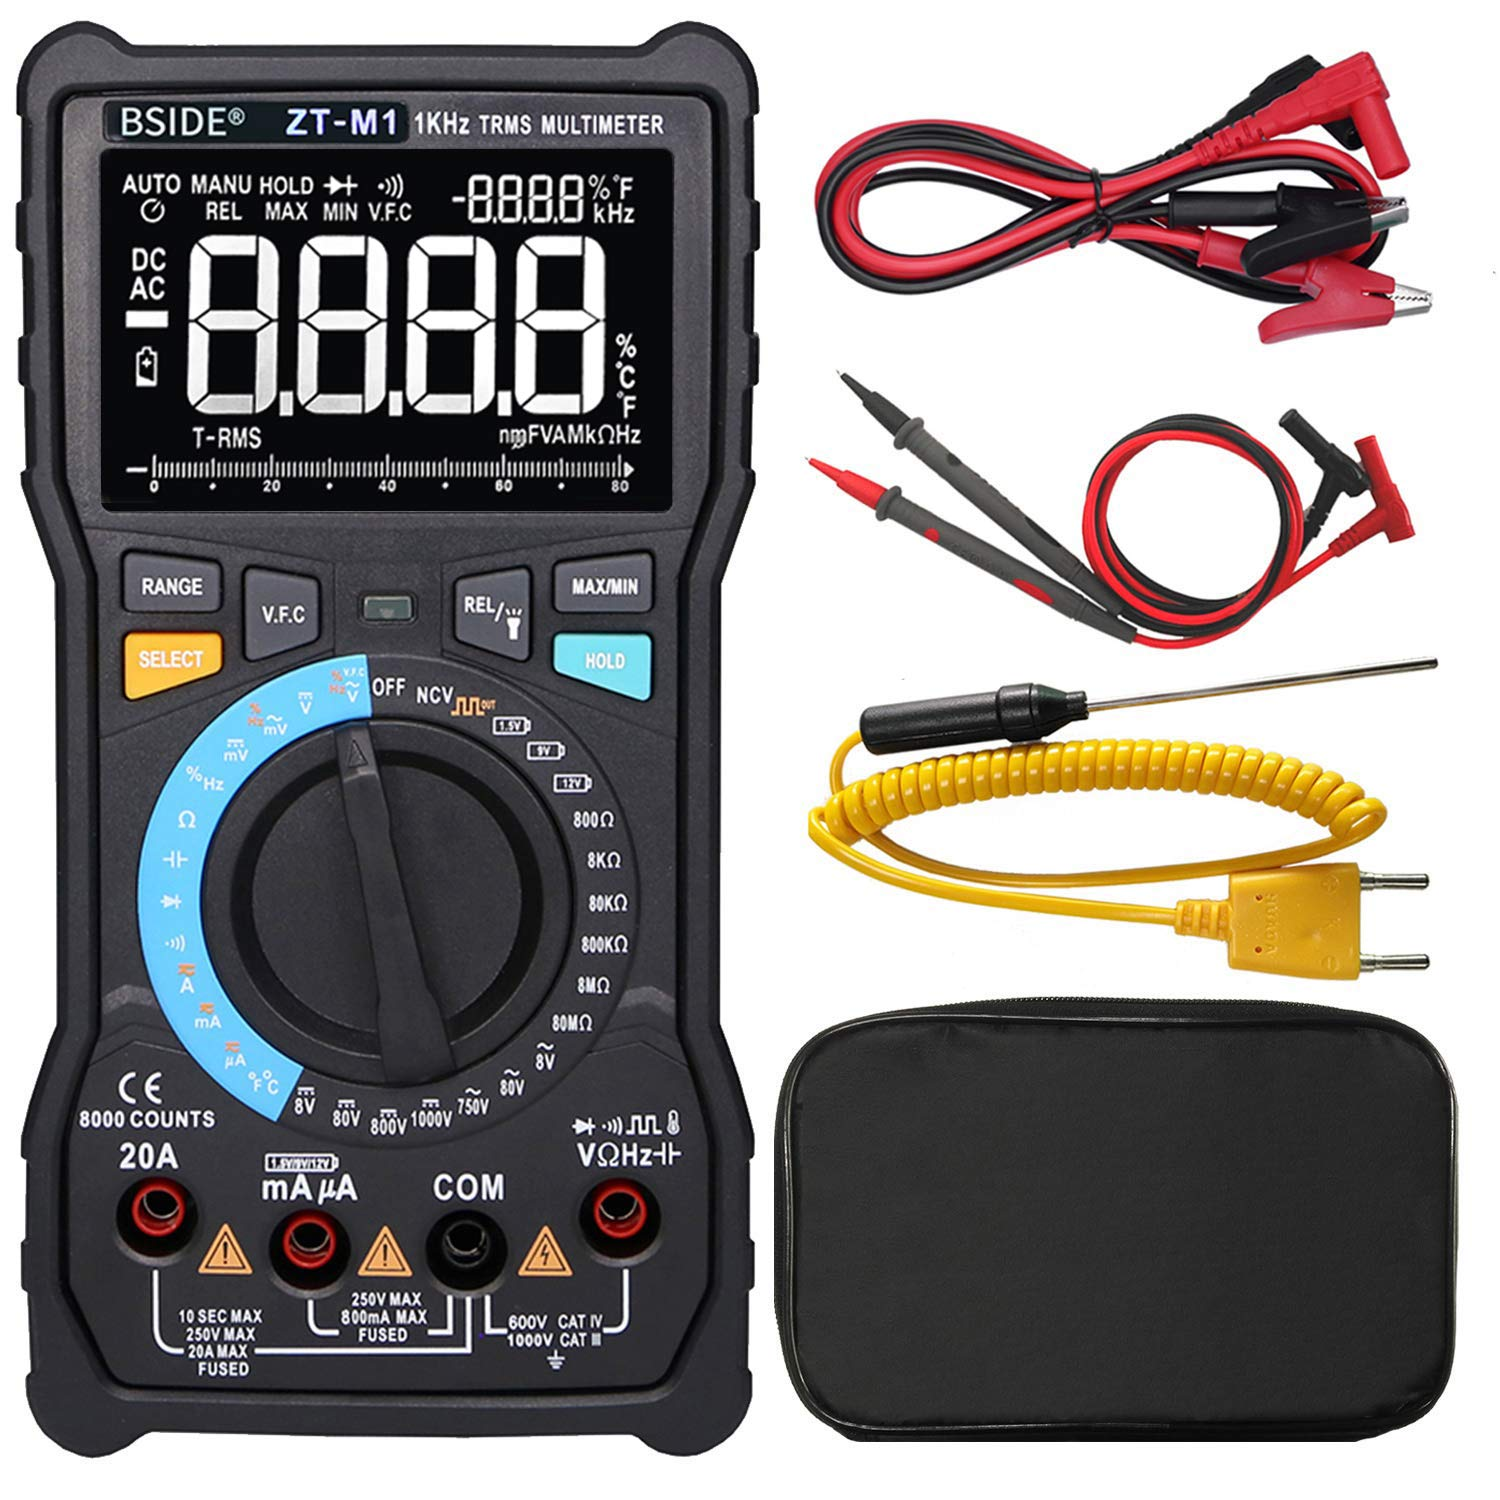 Bside Electricians Digital Multimeter 3-Line Display Large Screen True RMS 8000 Counts Auto-Ranging Voltmeter VFC Temperature Capacitance AC/DC Voltage Current Battery Tester with Alligator Clip